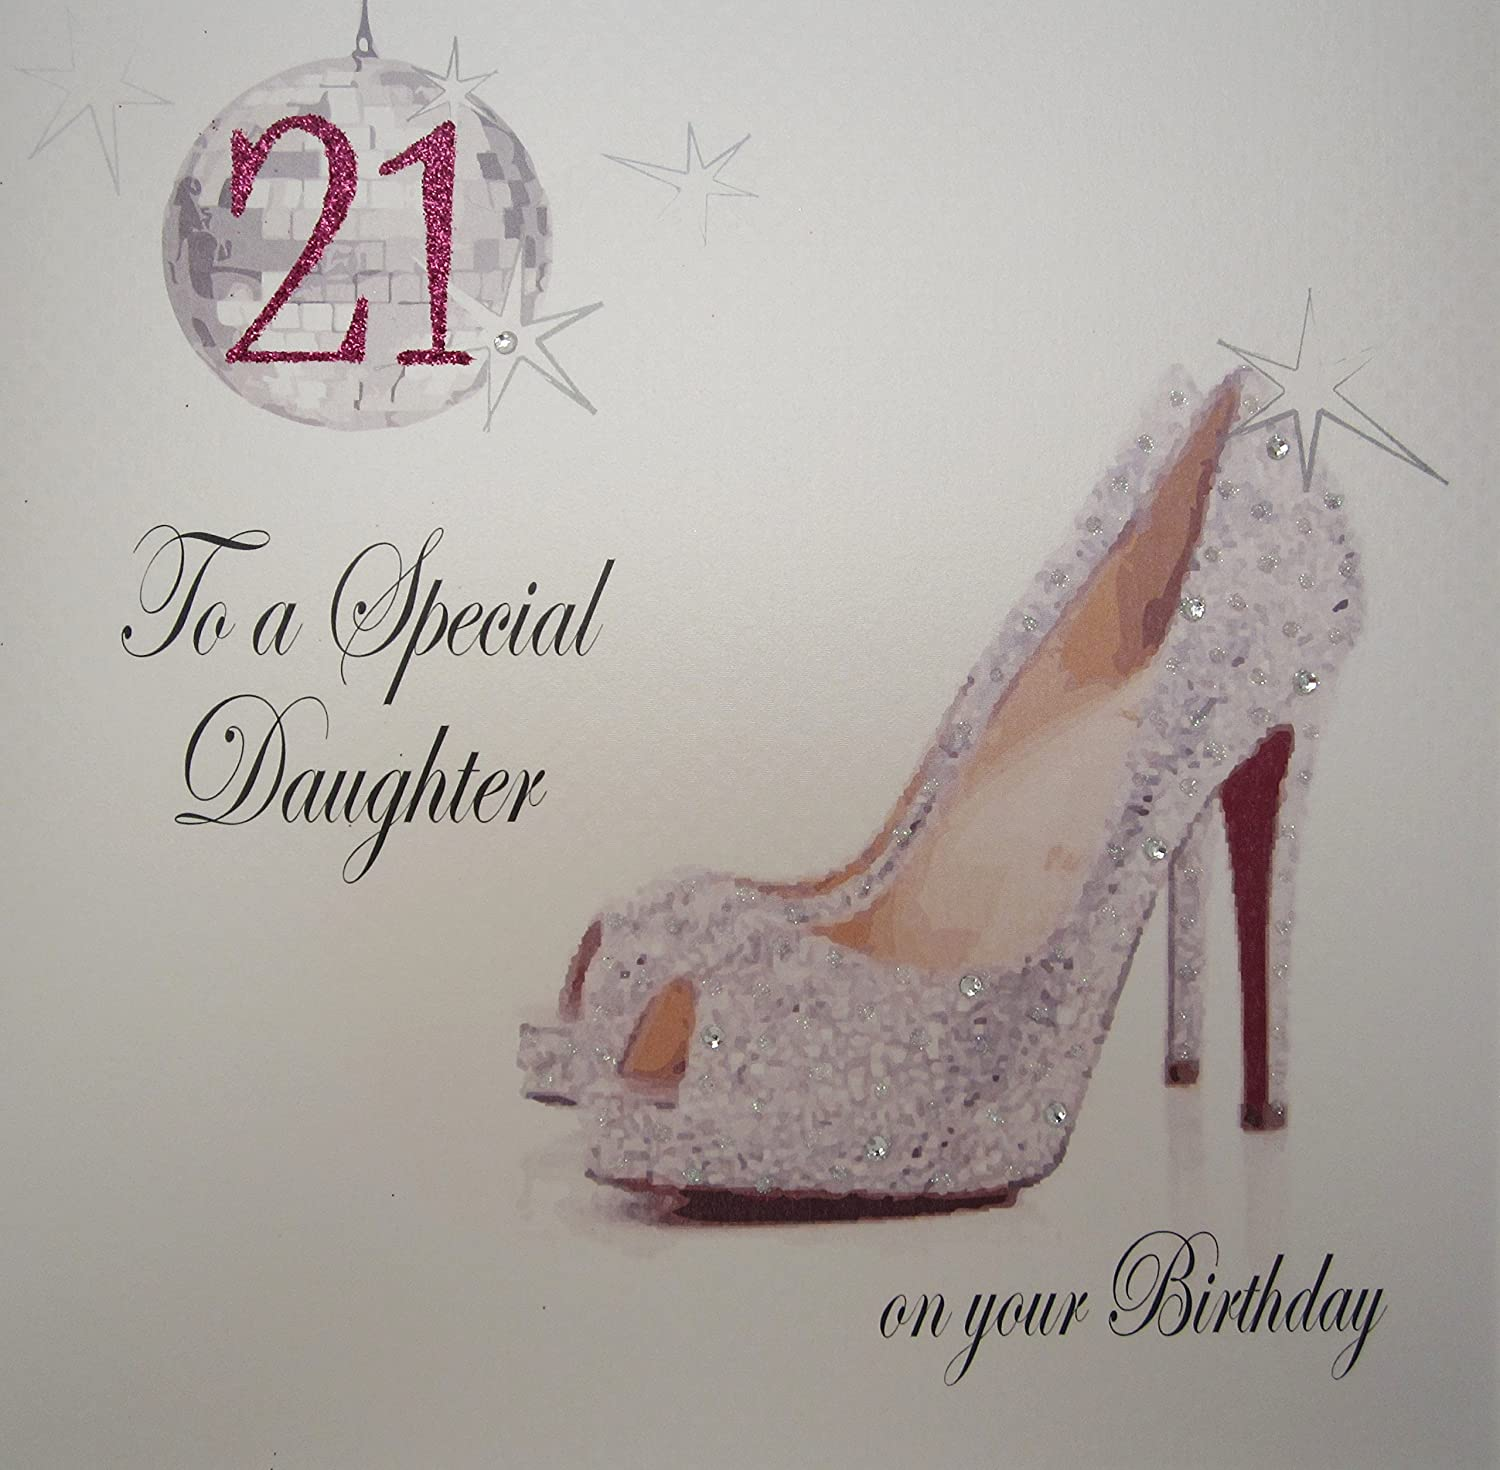 WHITE COTTON CARDS 21 To A Special Daughter Handmade 21st Birthday Card Sparkly Shoe Amazoncouk Kitchen Home